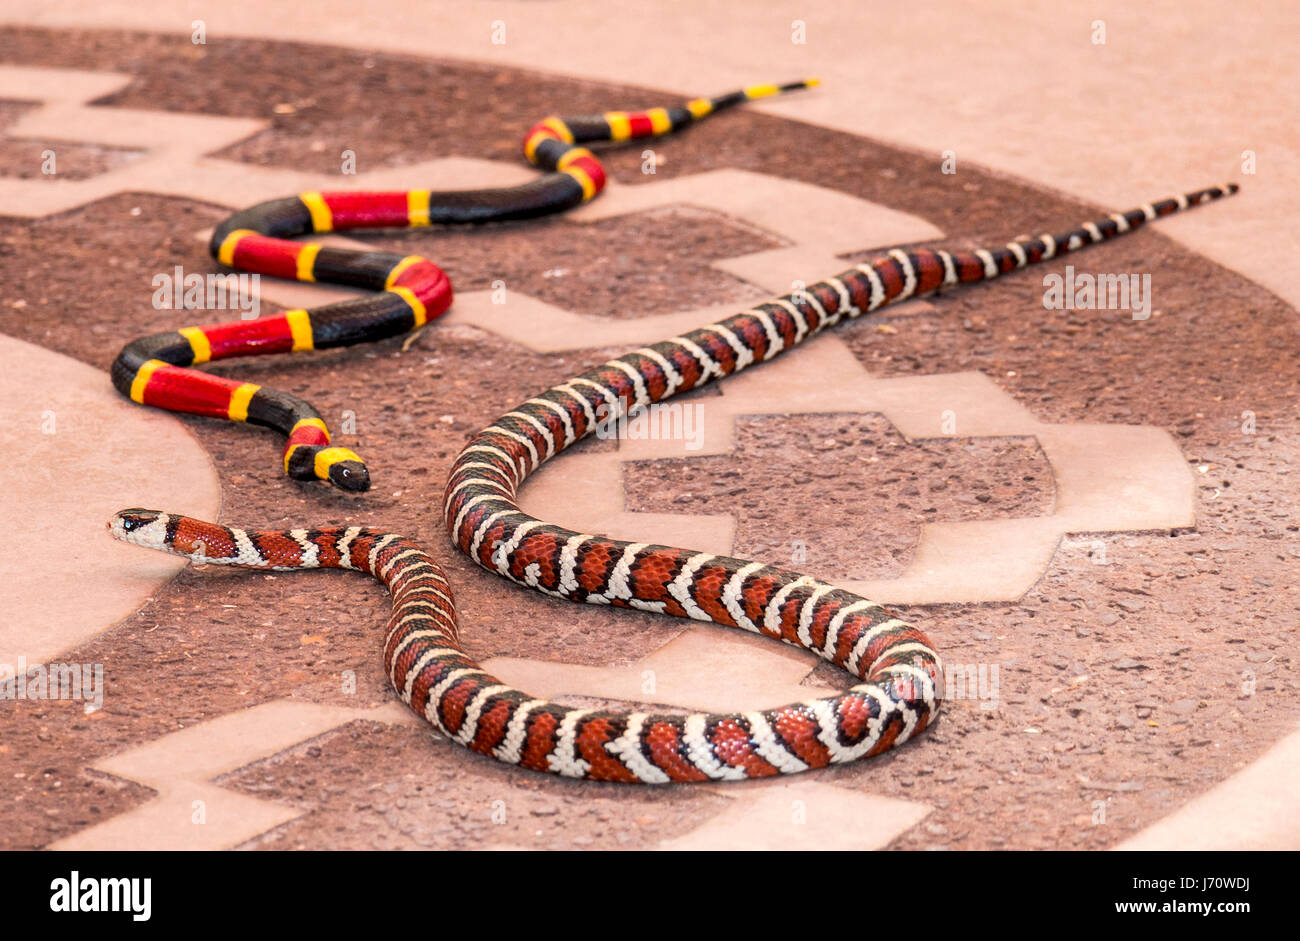 California mountain kingsnake next to a toy coral snake. The kingsnake is a species of nonvenomous snake  endemic - Stock Image